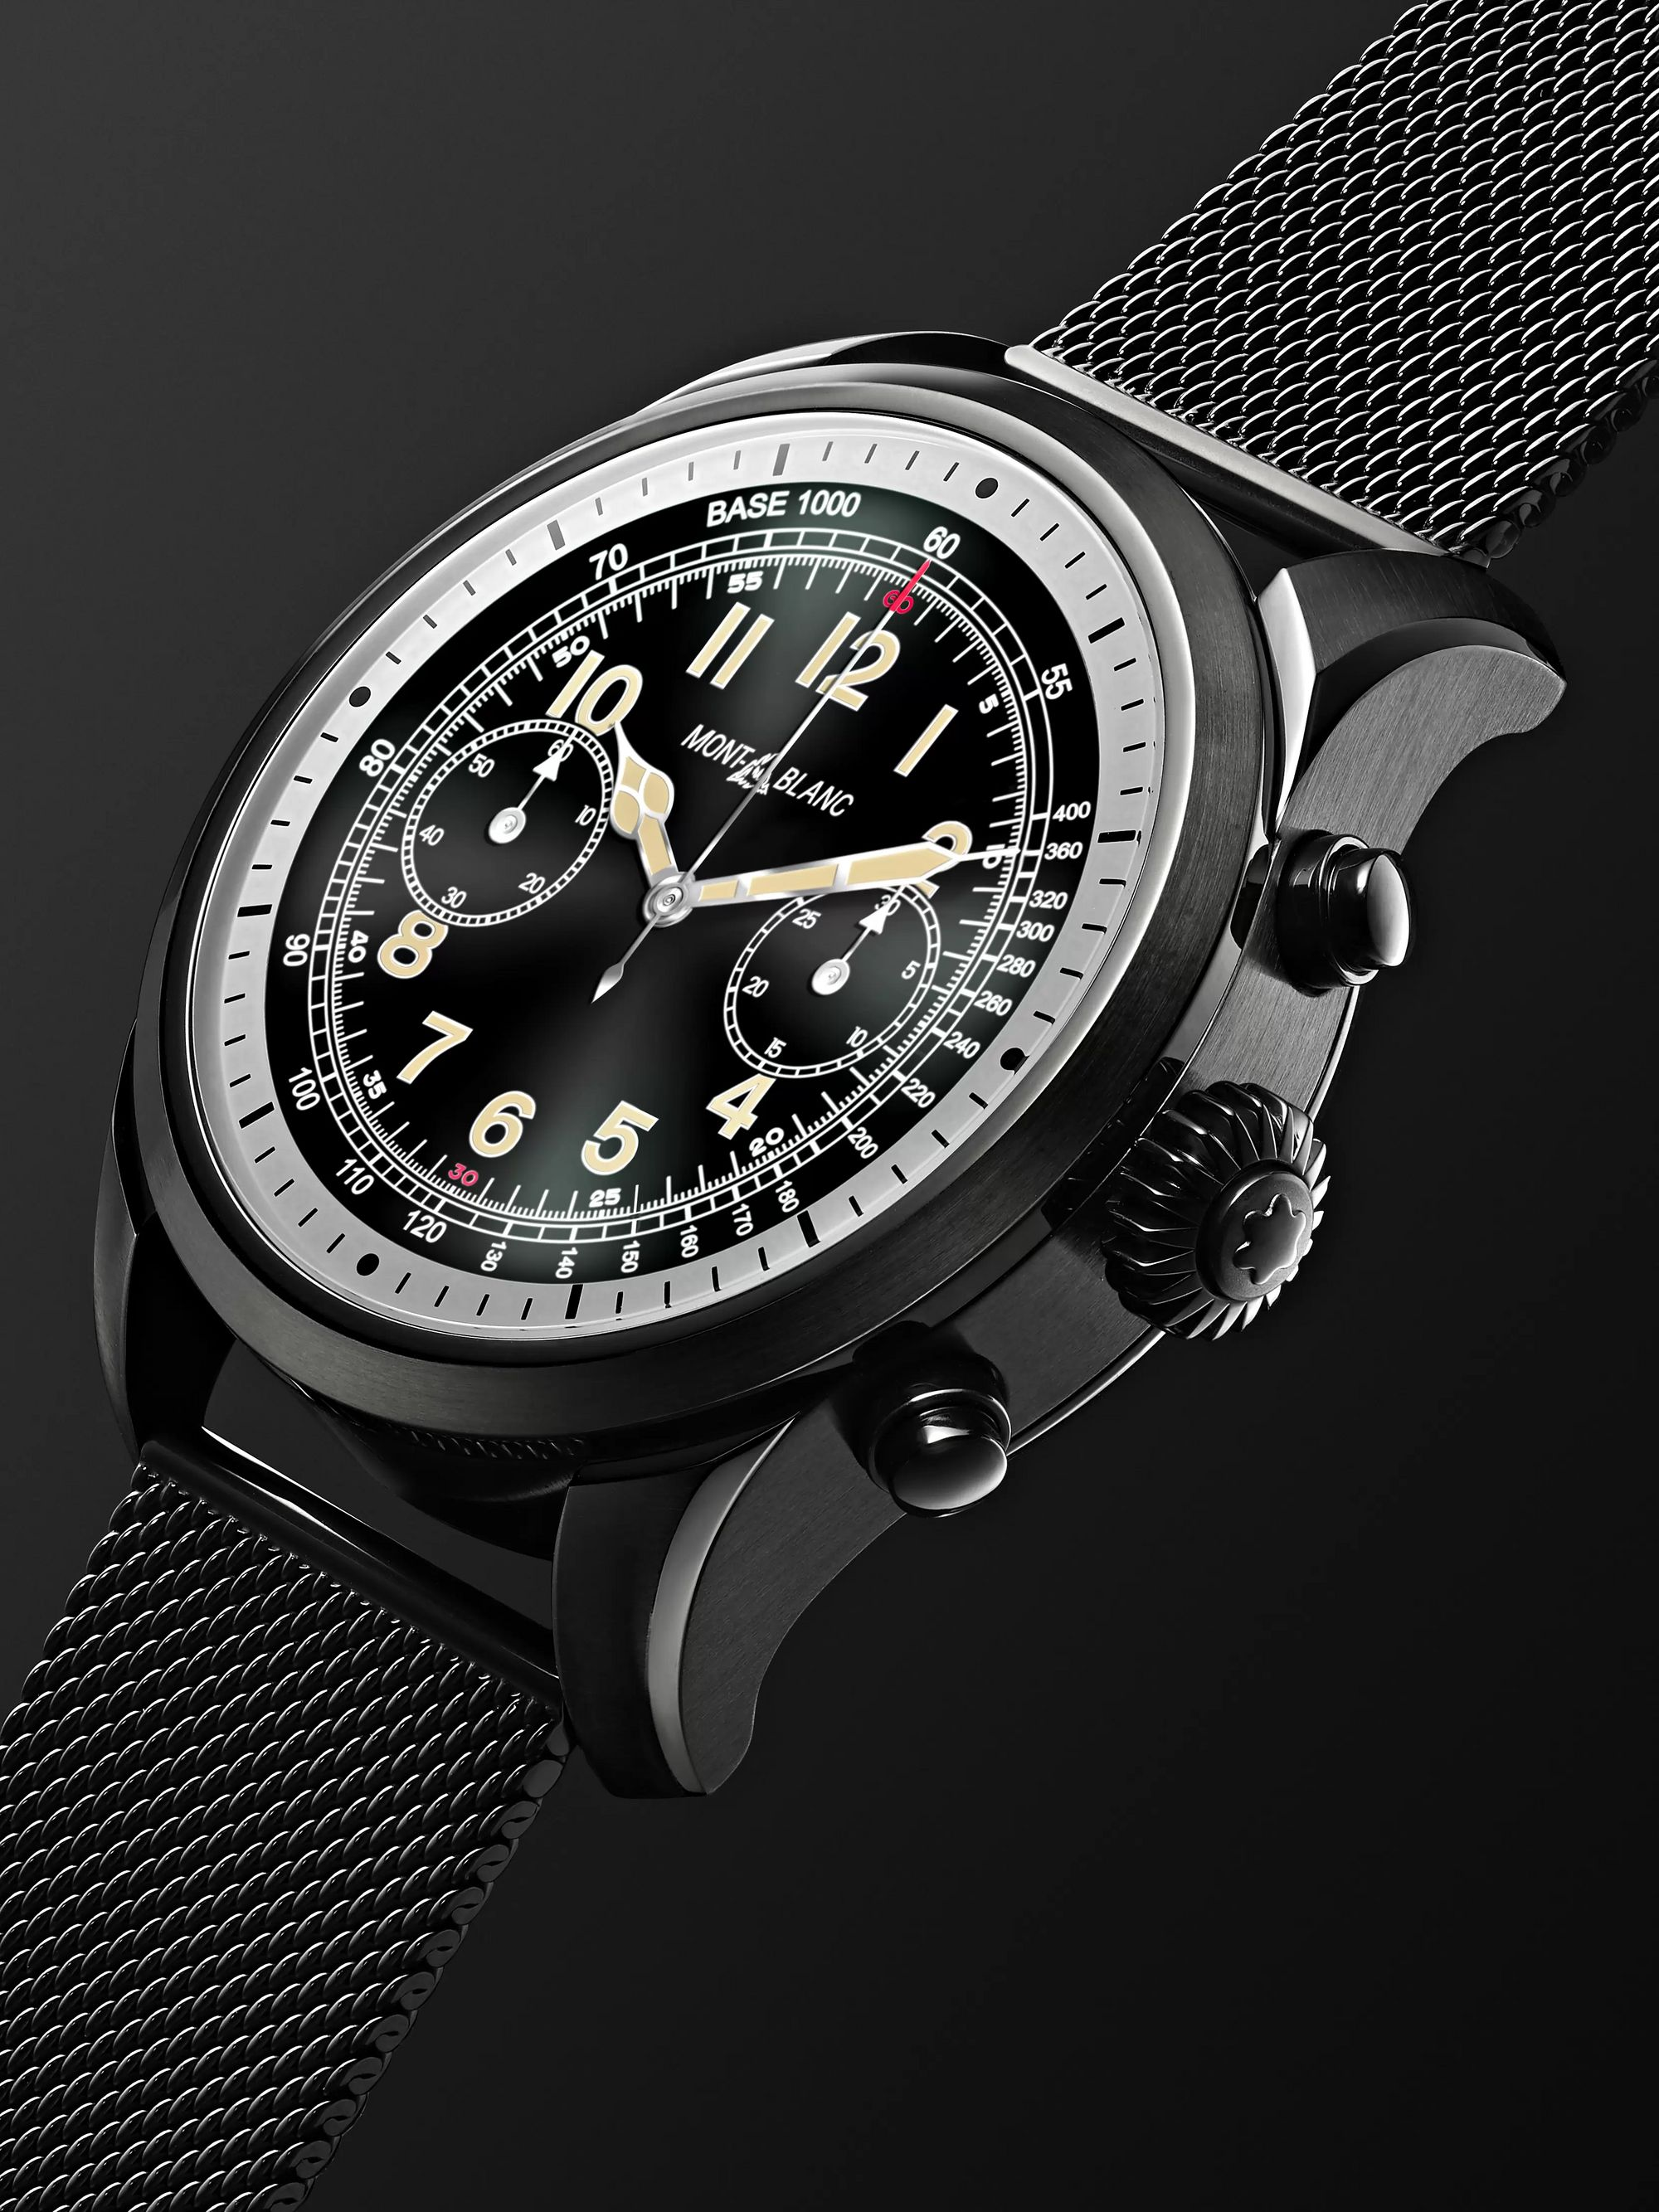 Montblanc Summit 2 42mm DLC-Coated Stainless Steel Smart Watch, Ref. No. 119723